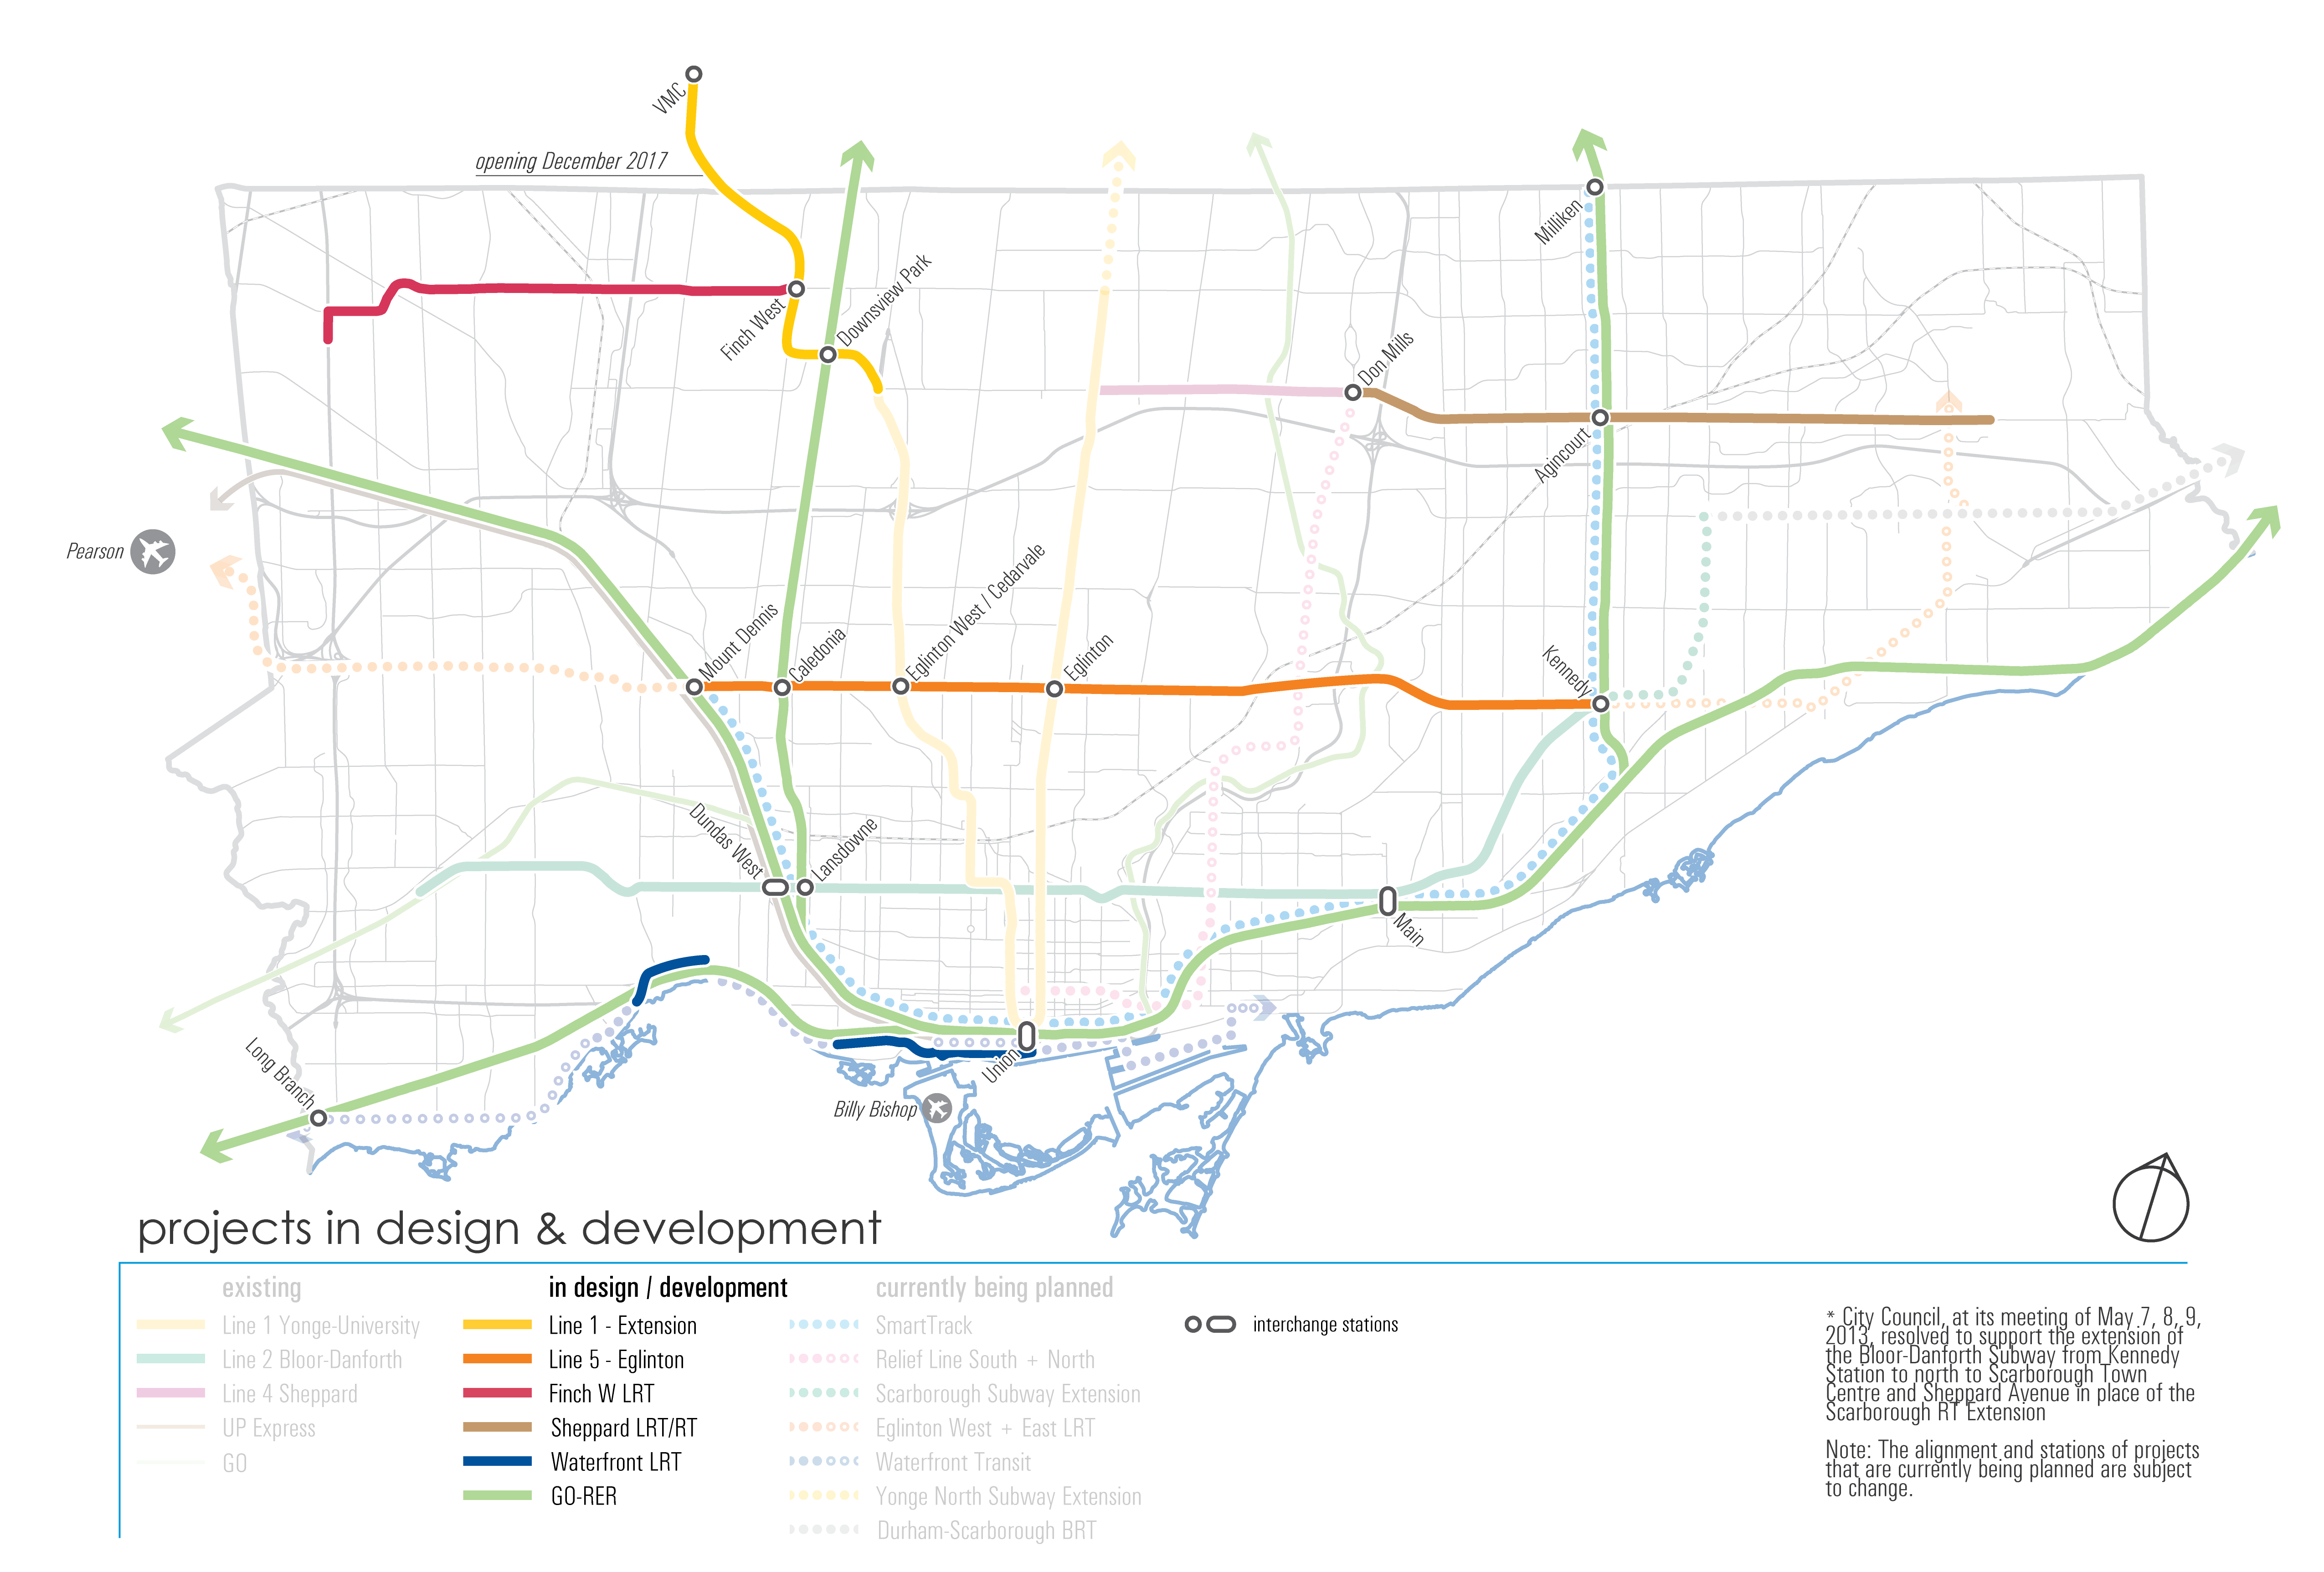 Map depicting projects in Design and Development